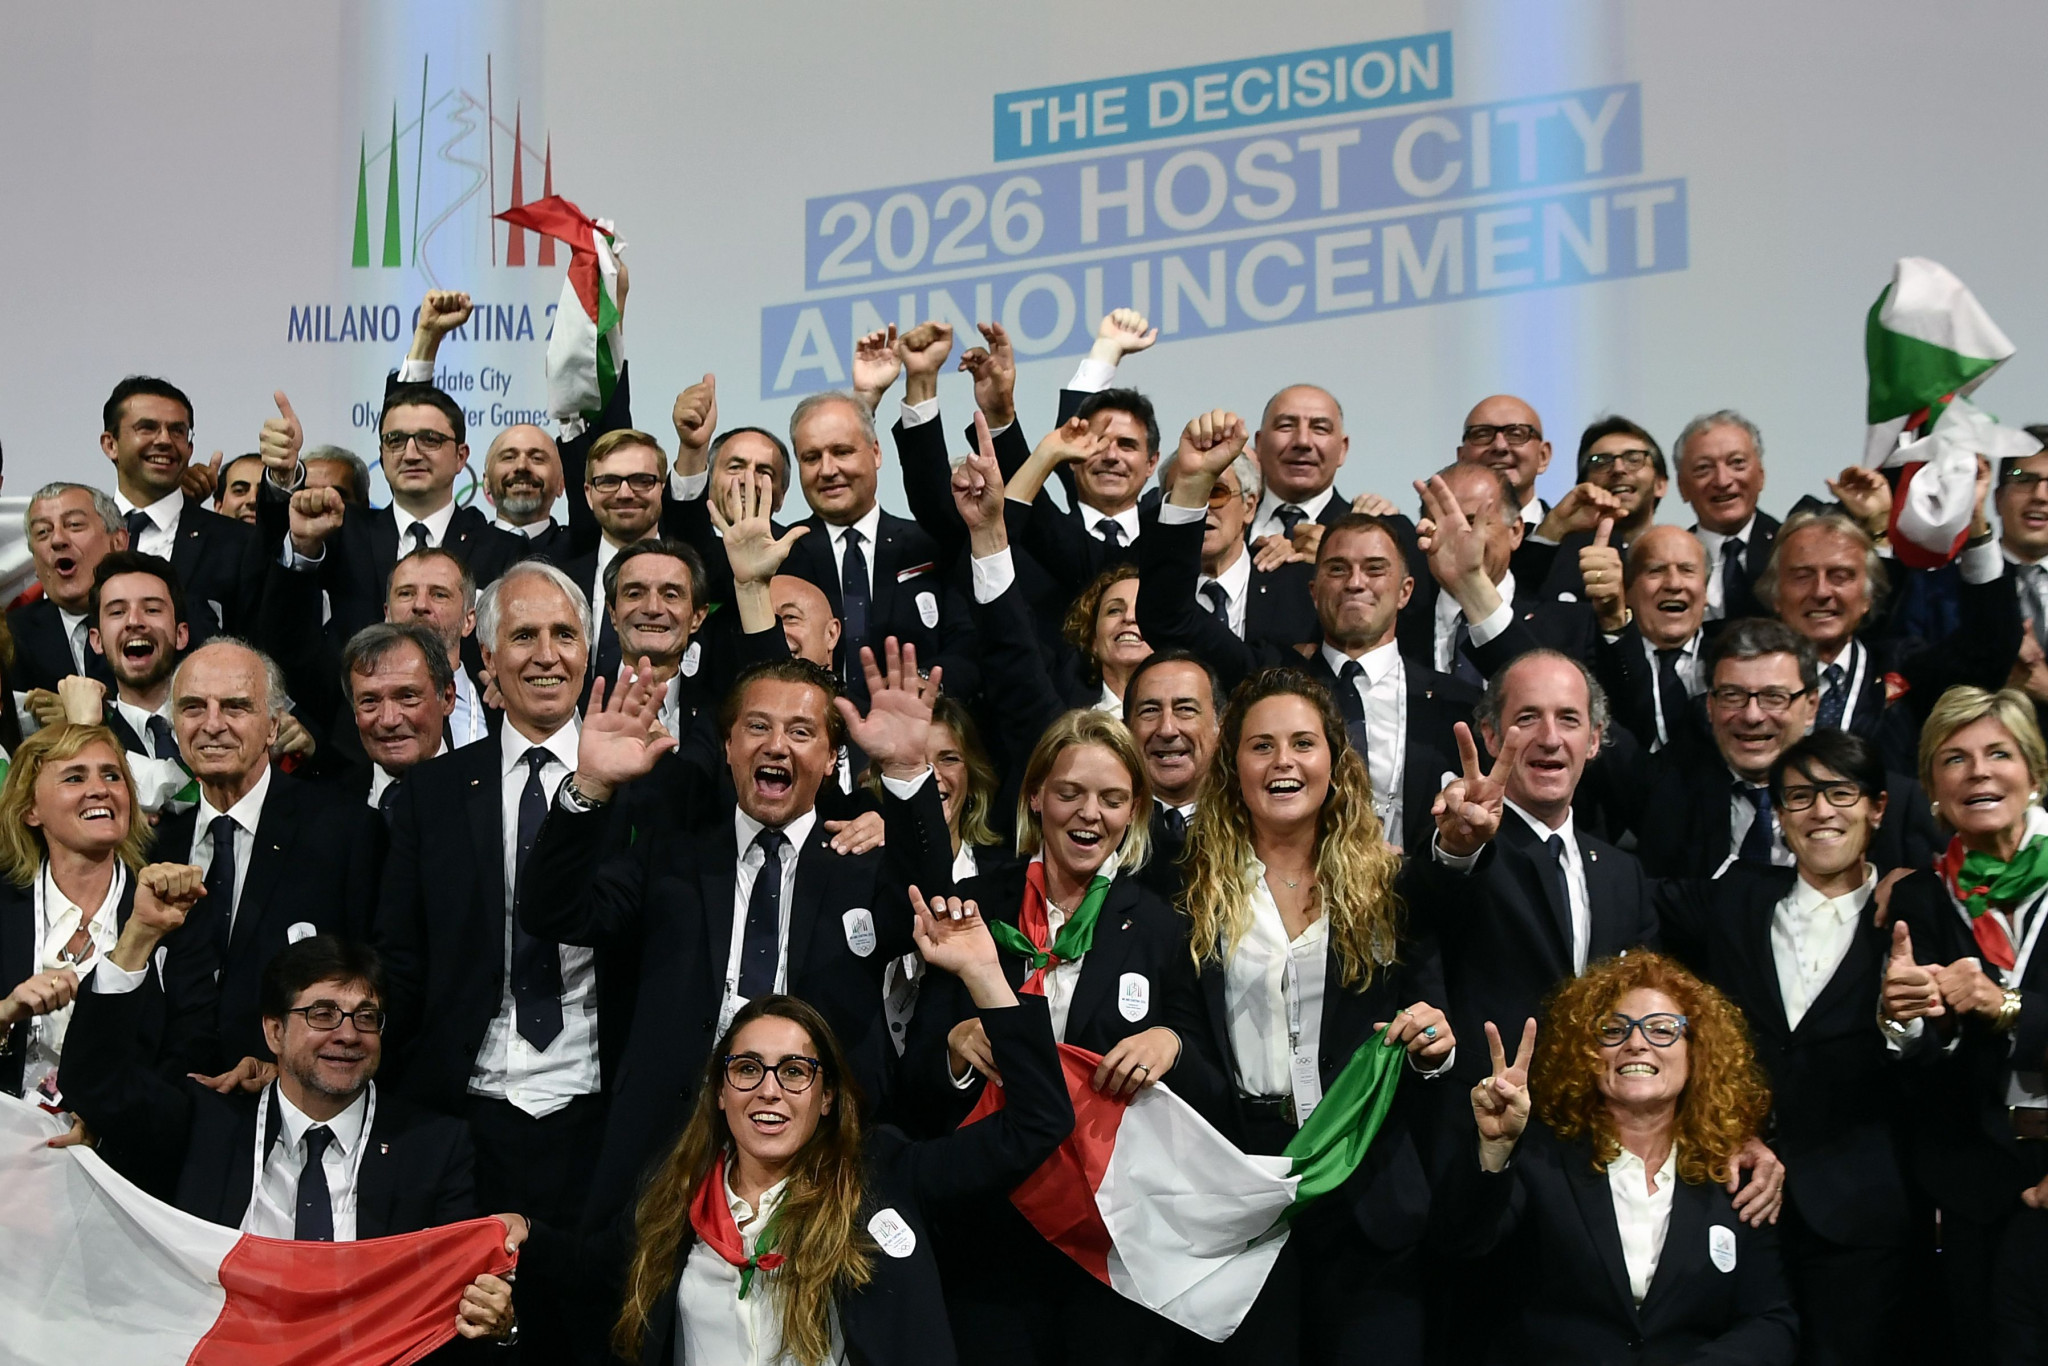 Members of the delegation of Milan/Cortina d'Ampezzo 2026 Winter Olympics candidate city react after the cities were selected to host the 2026 Olympic Winter Games ©Getty Images